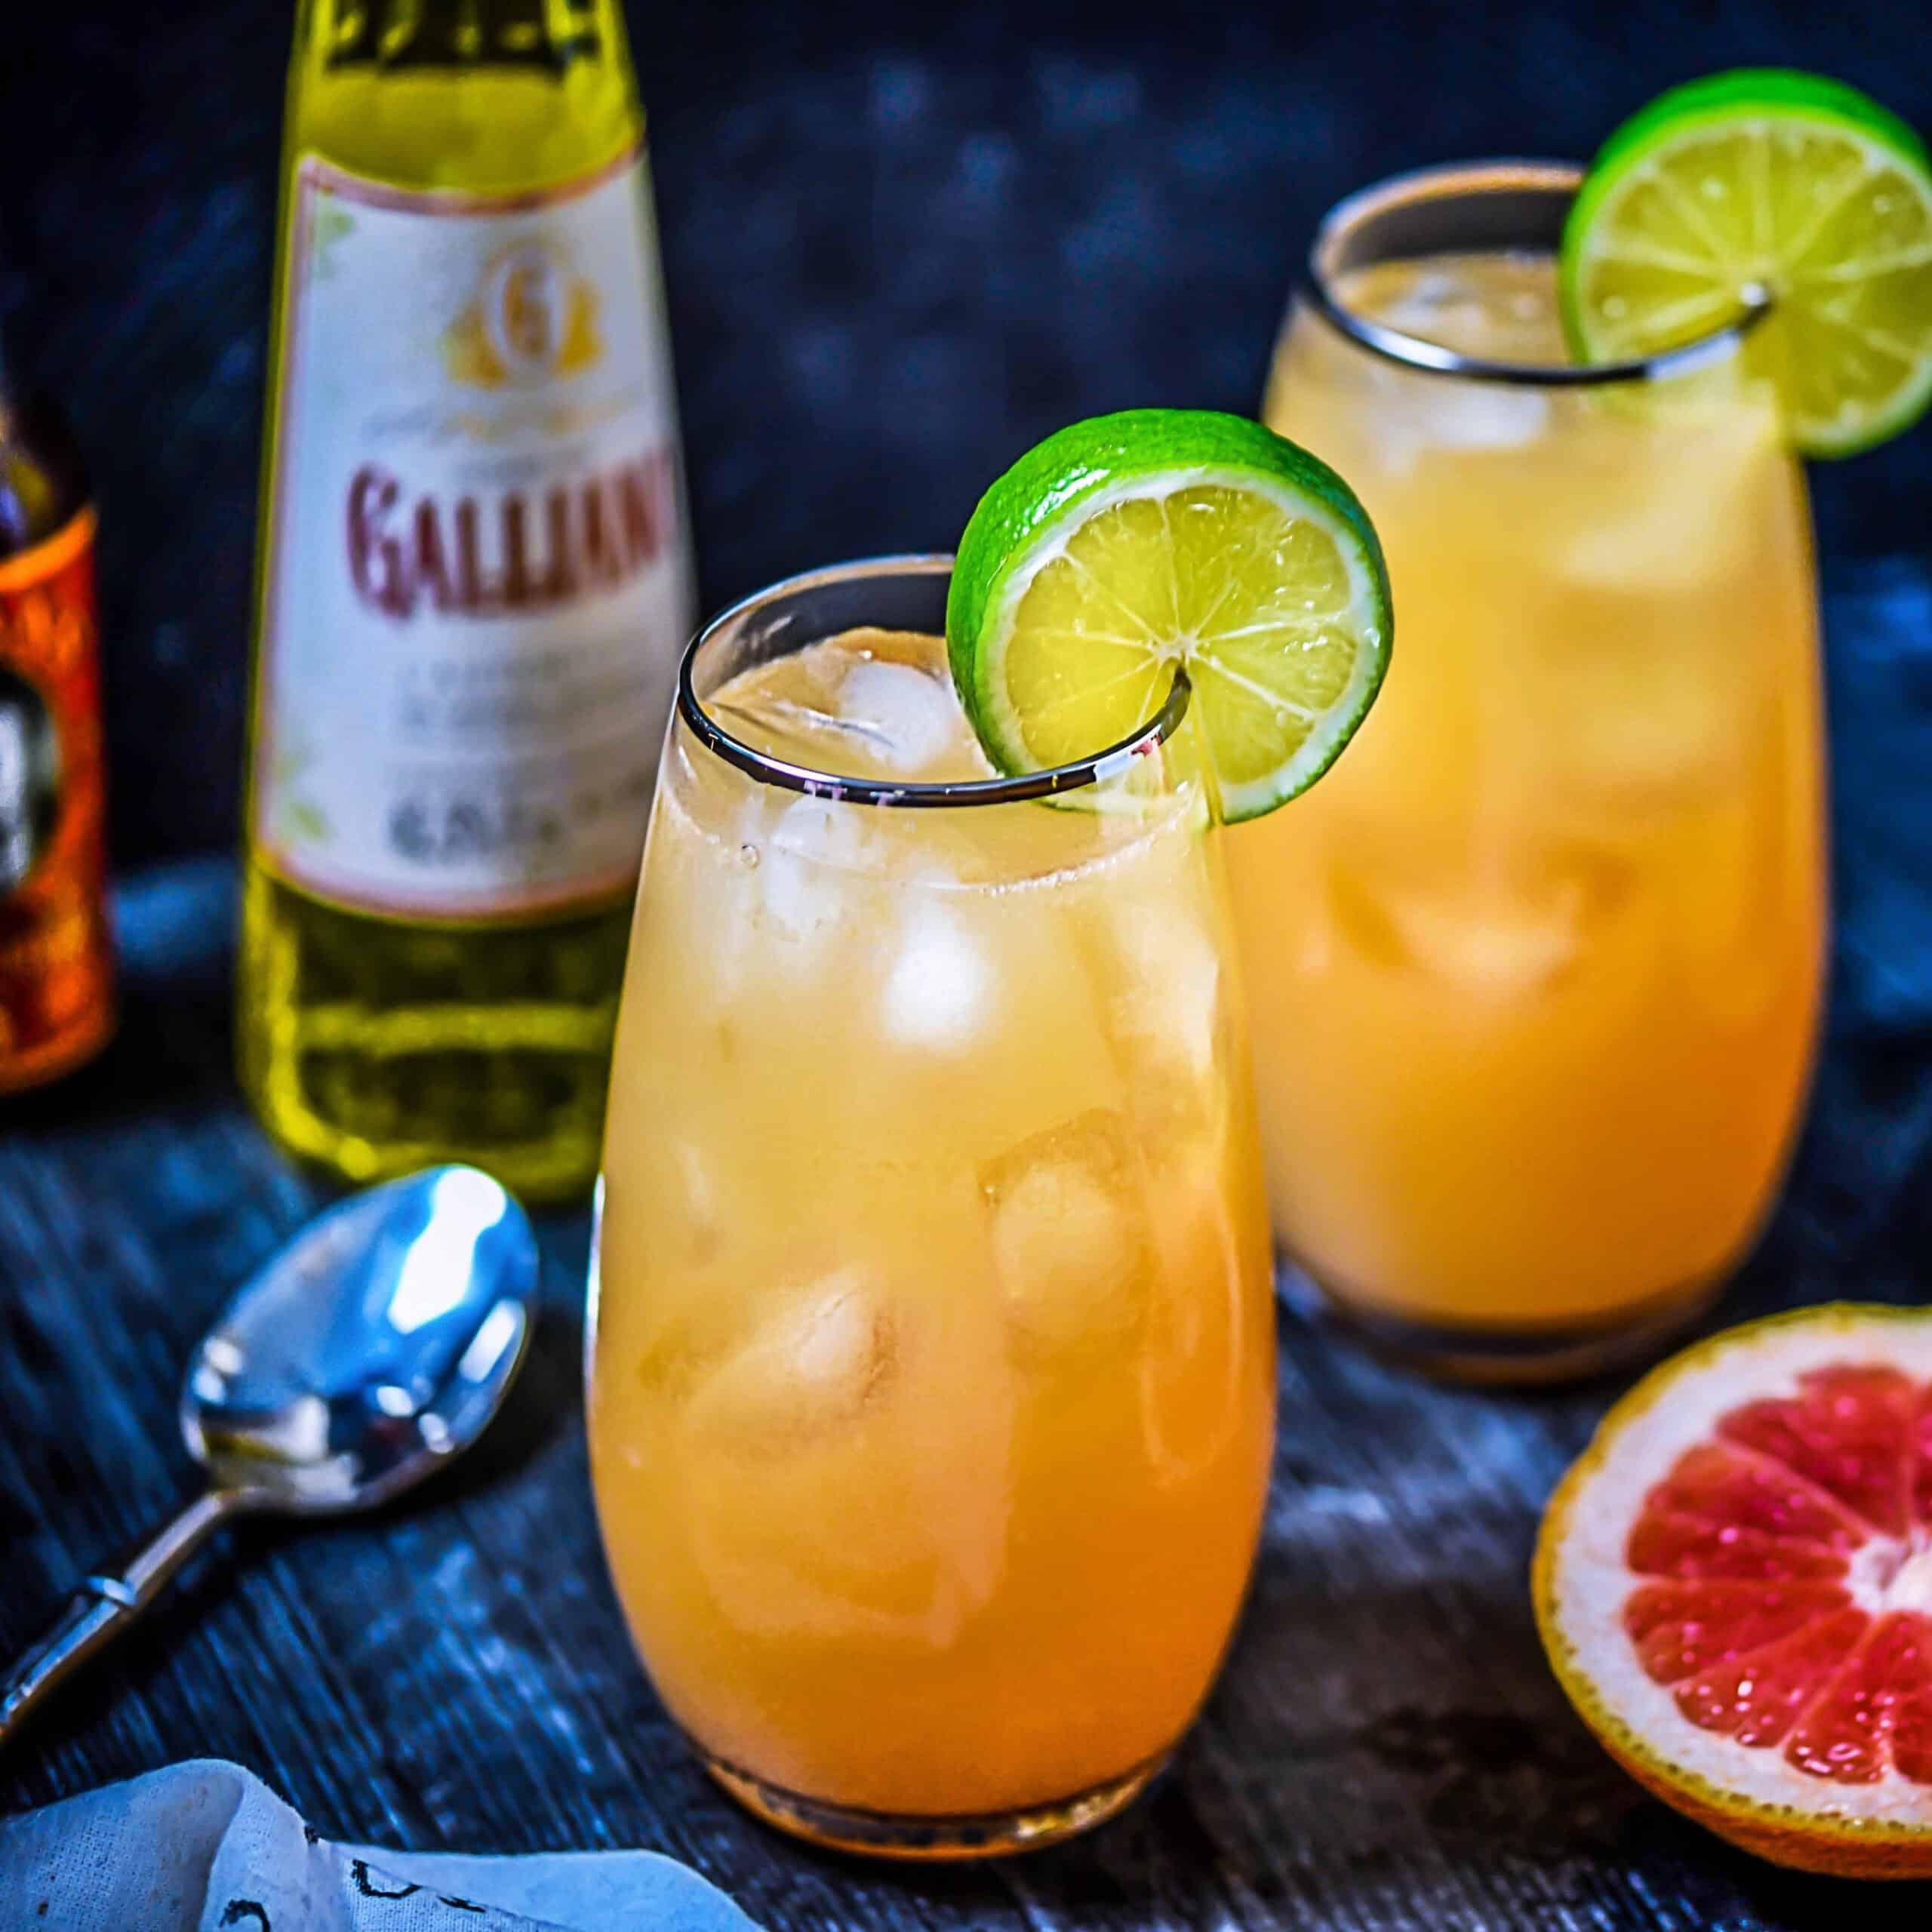 Tequila Wallbanger